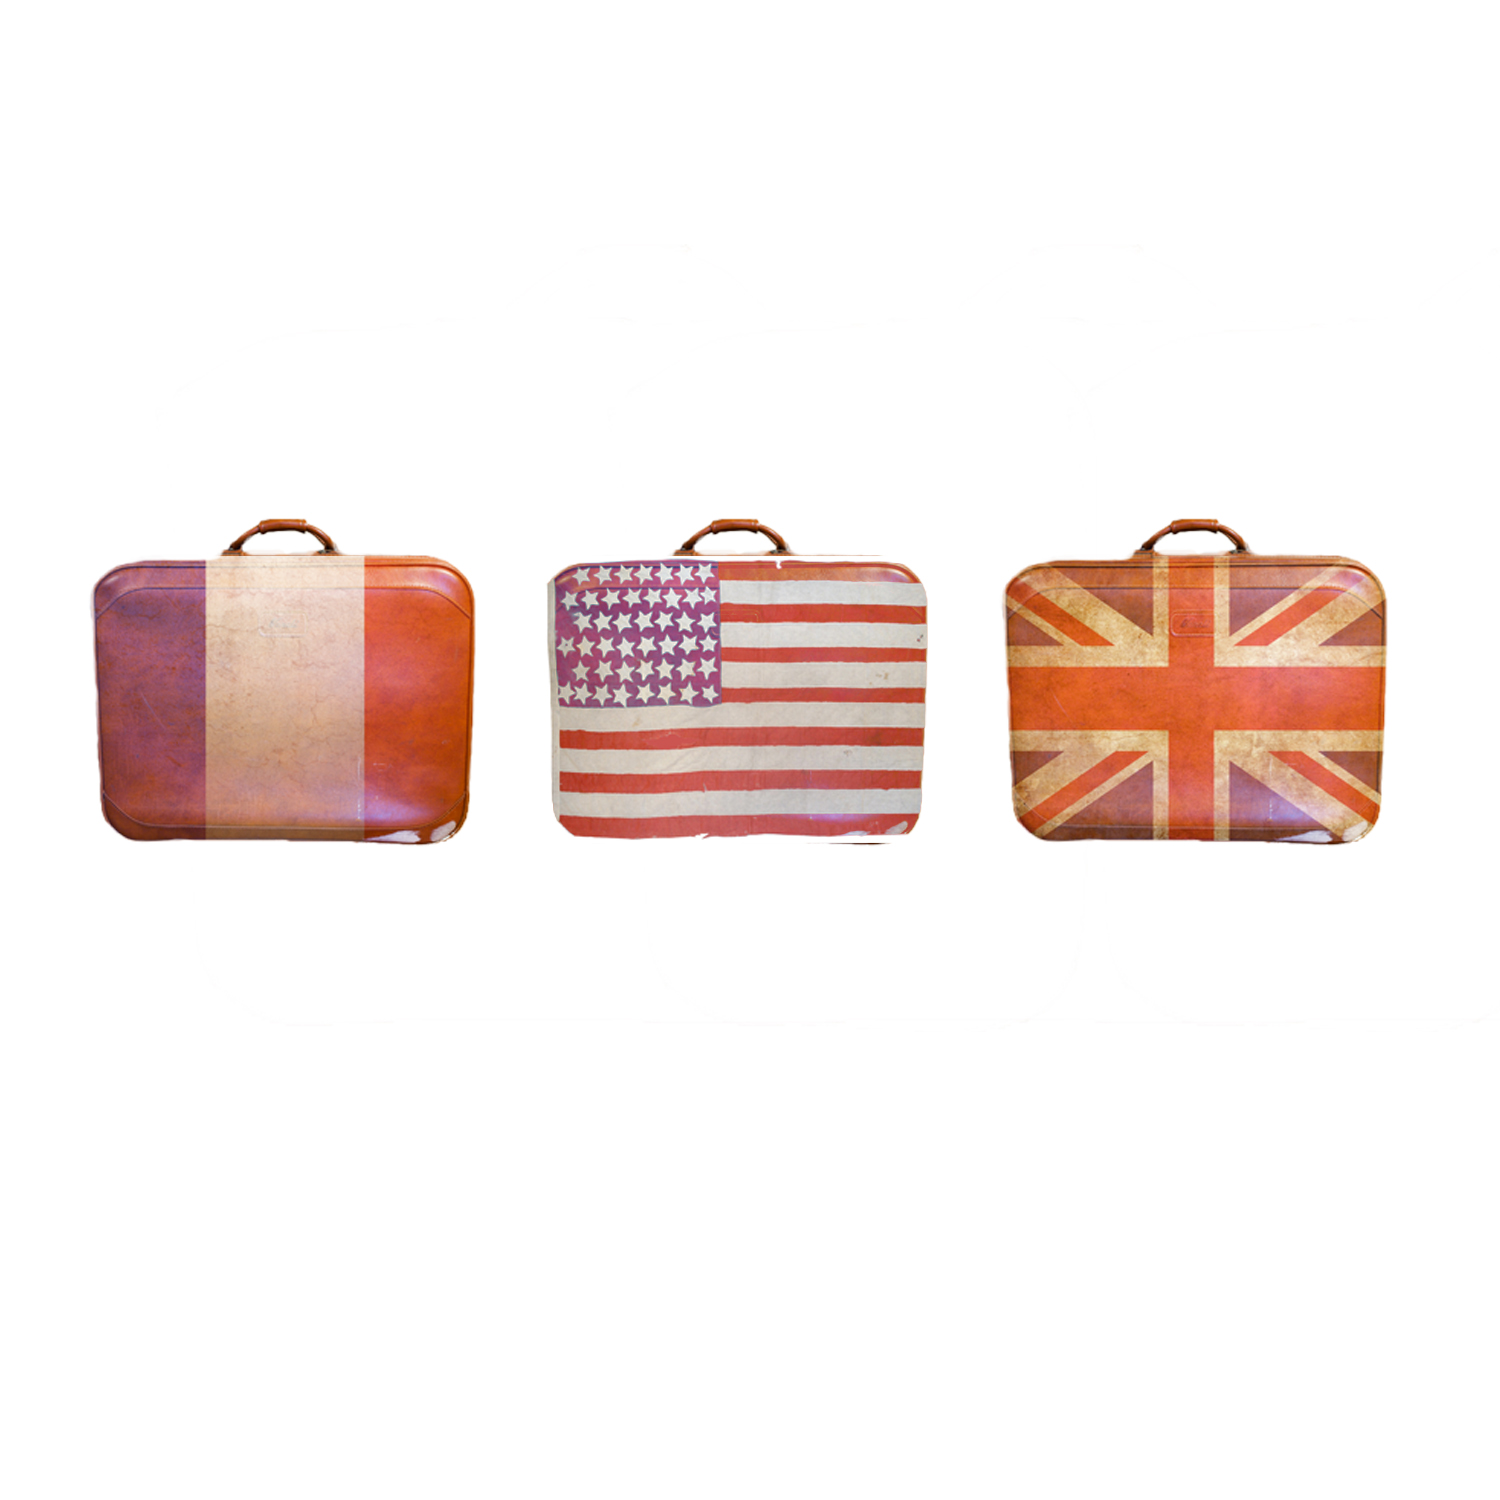 NESW_Cover 2017 Suitcases ONLY